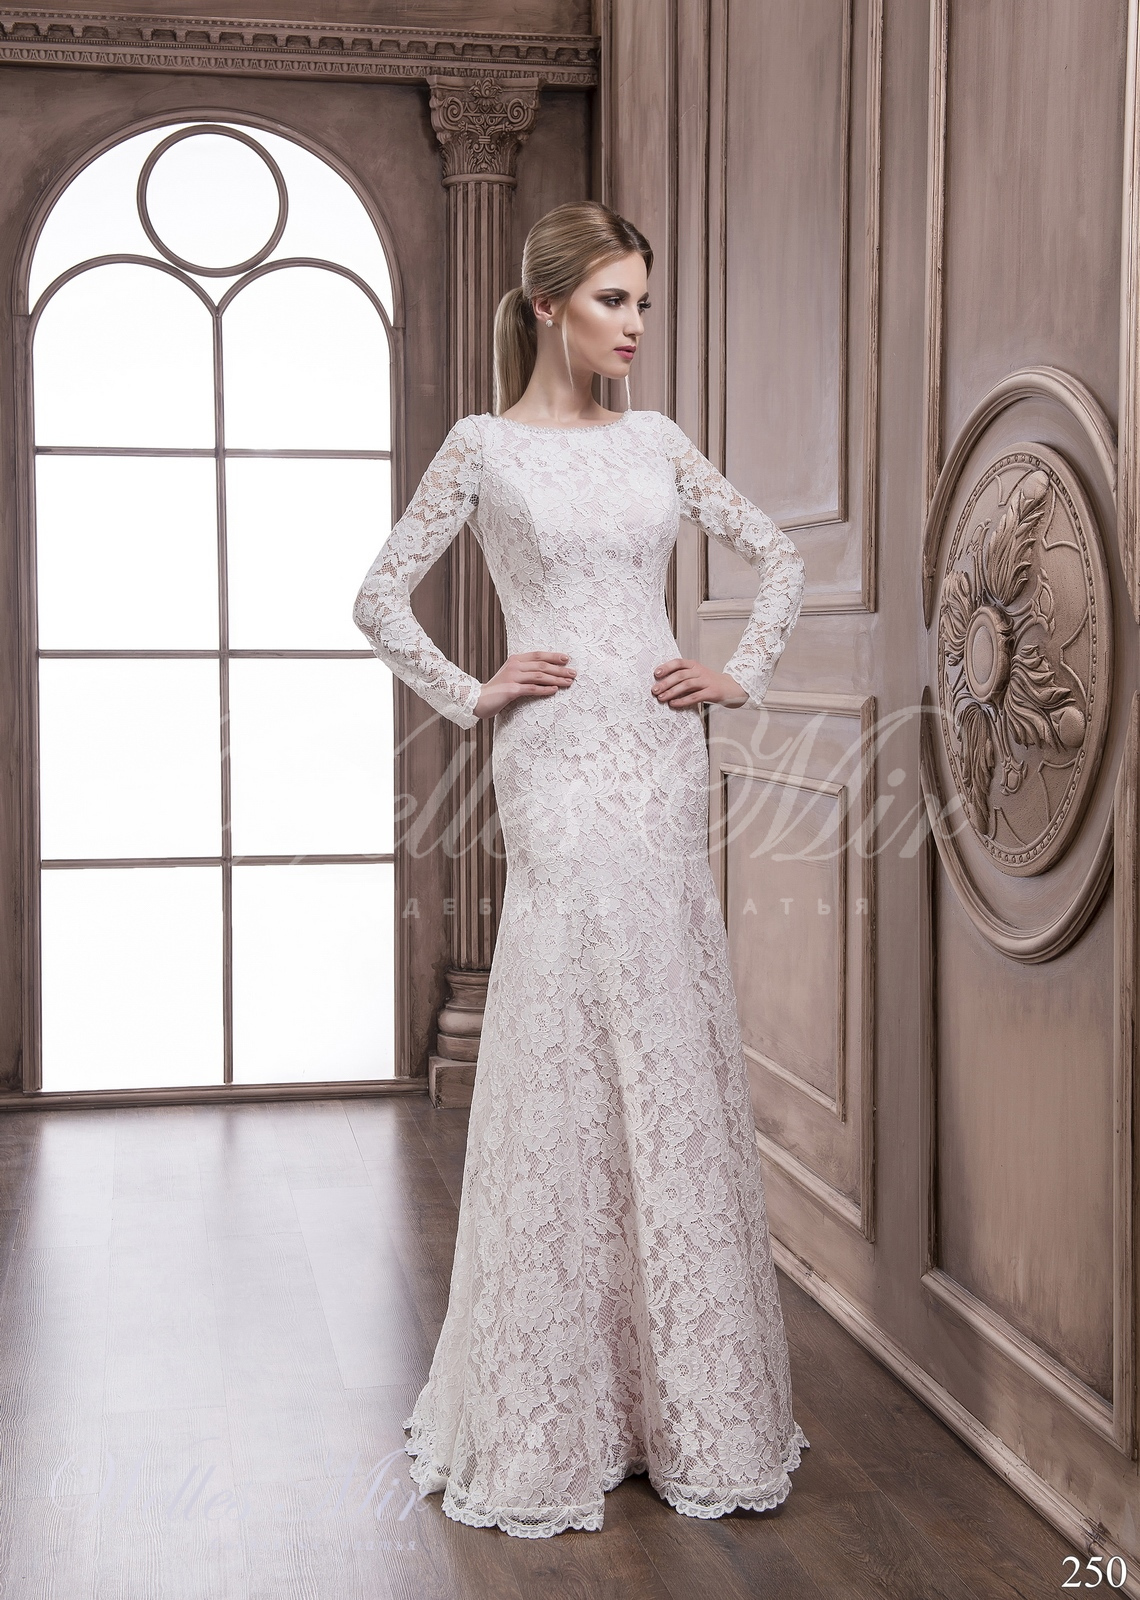 Lace wedding dress 250